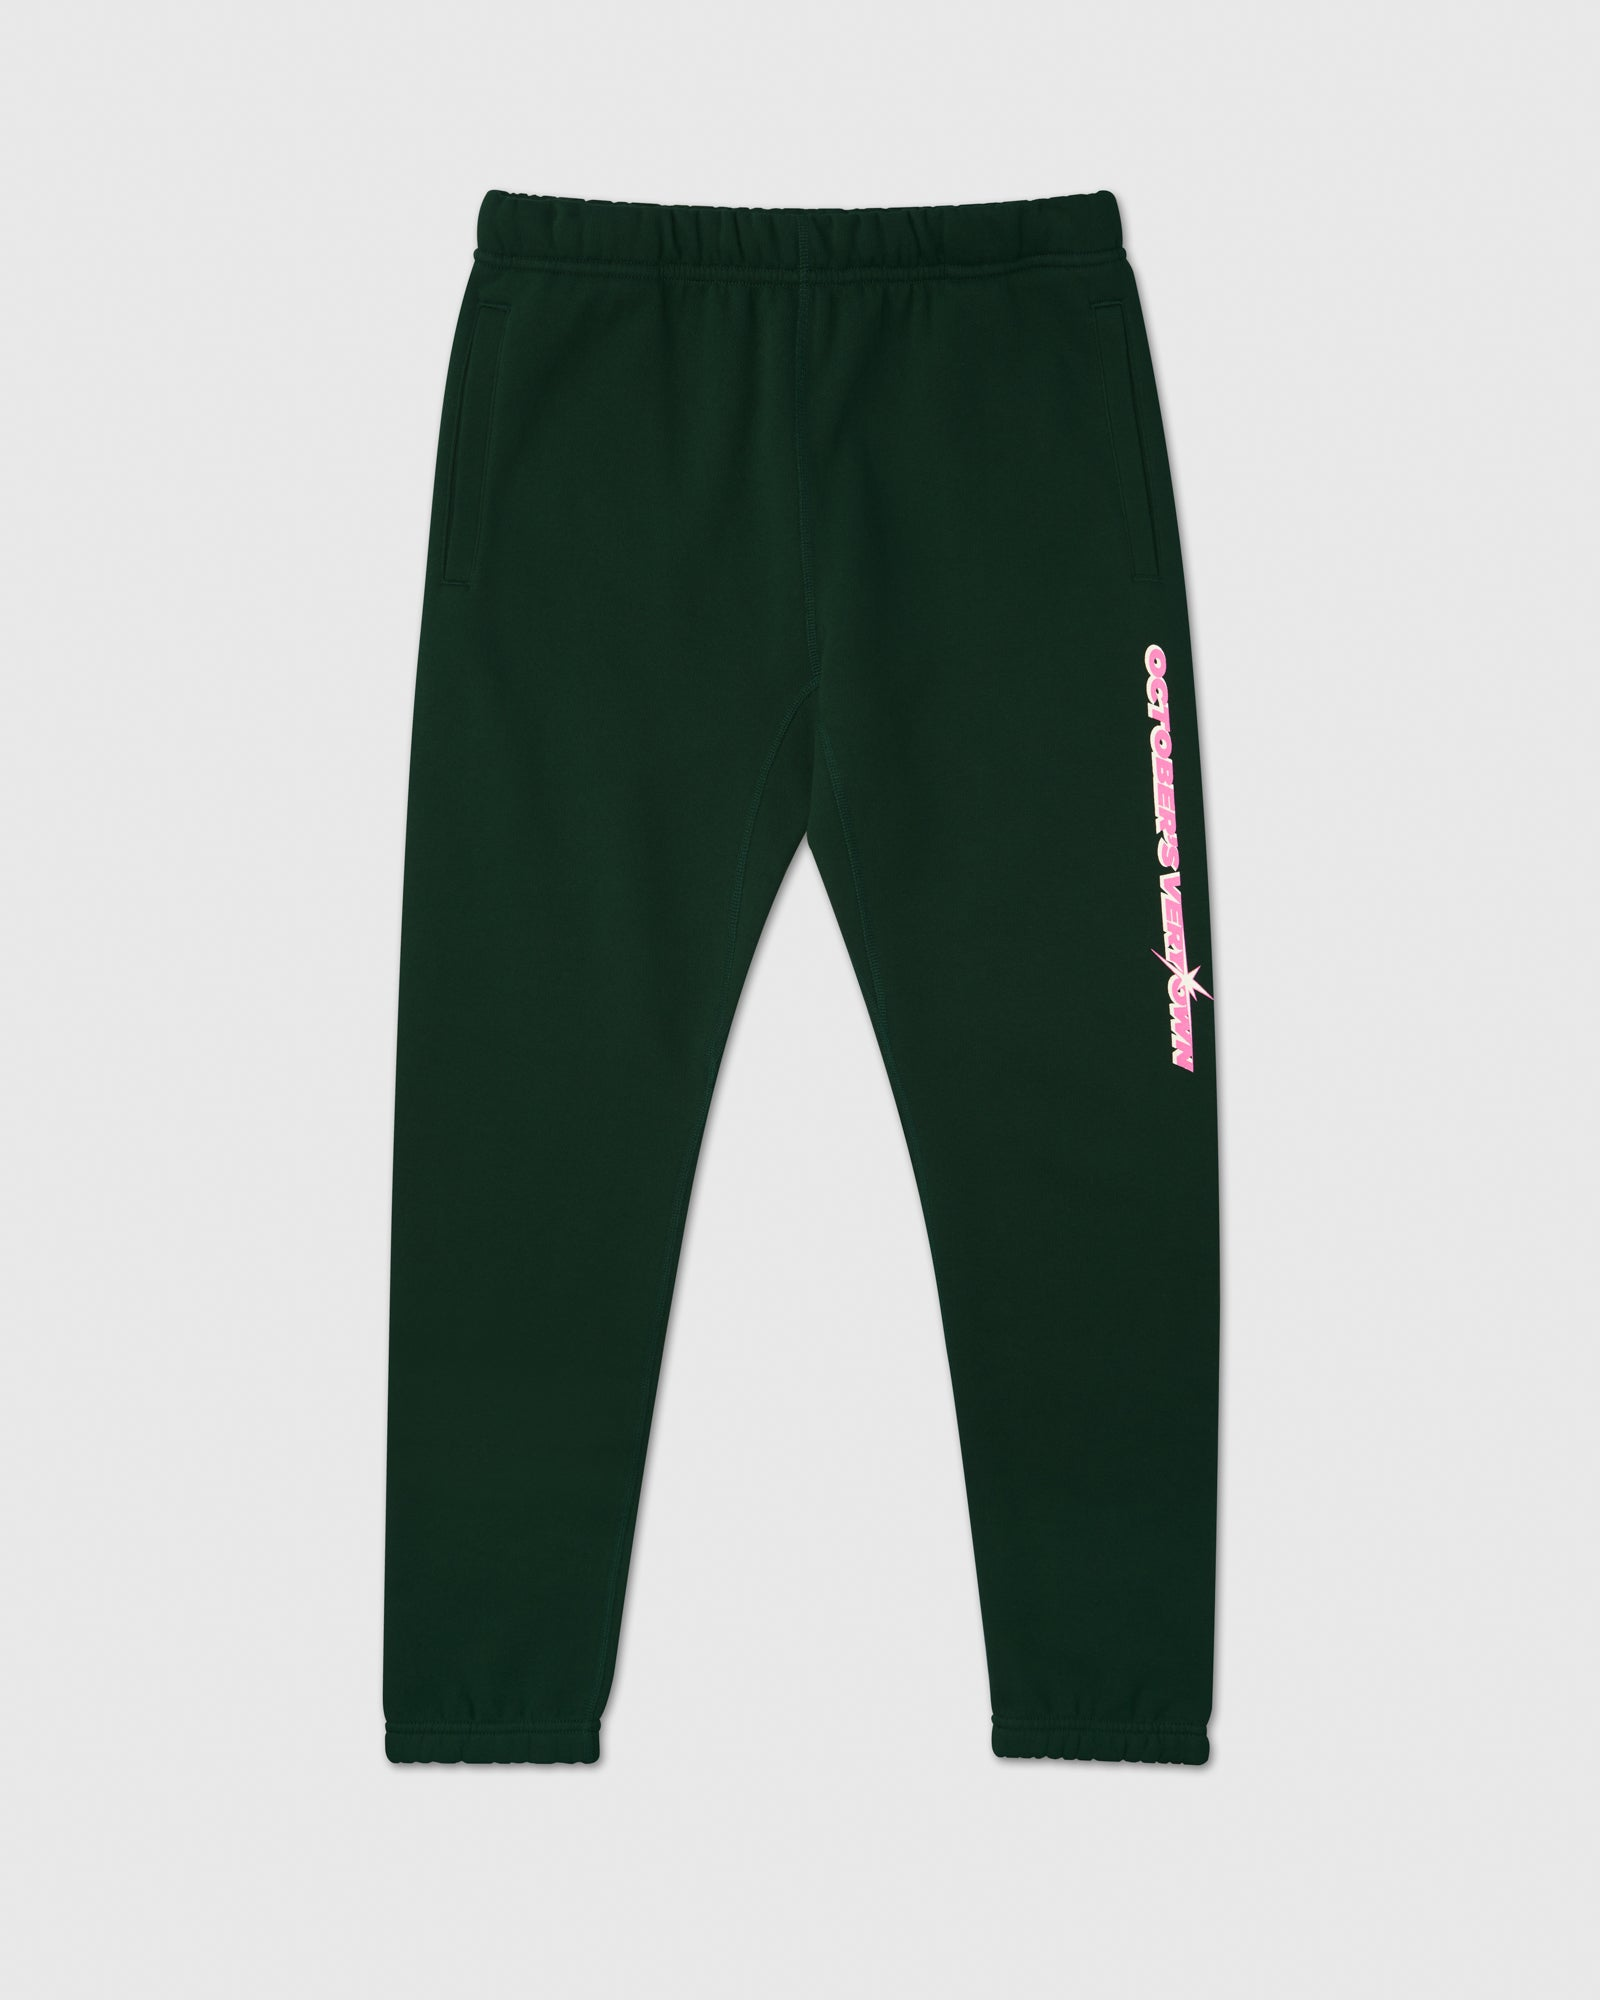 SHINING WORDMARK SWEATPANT - PINE IMAGE #1